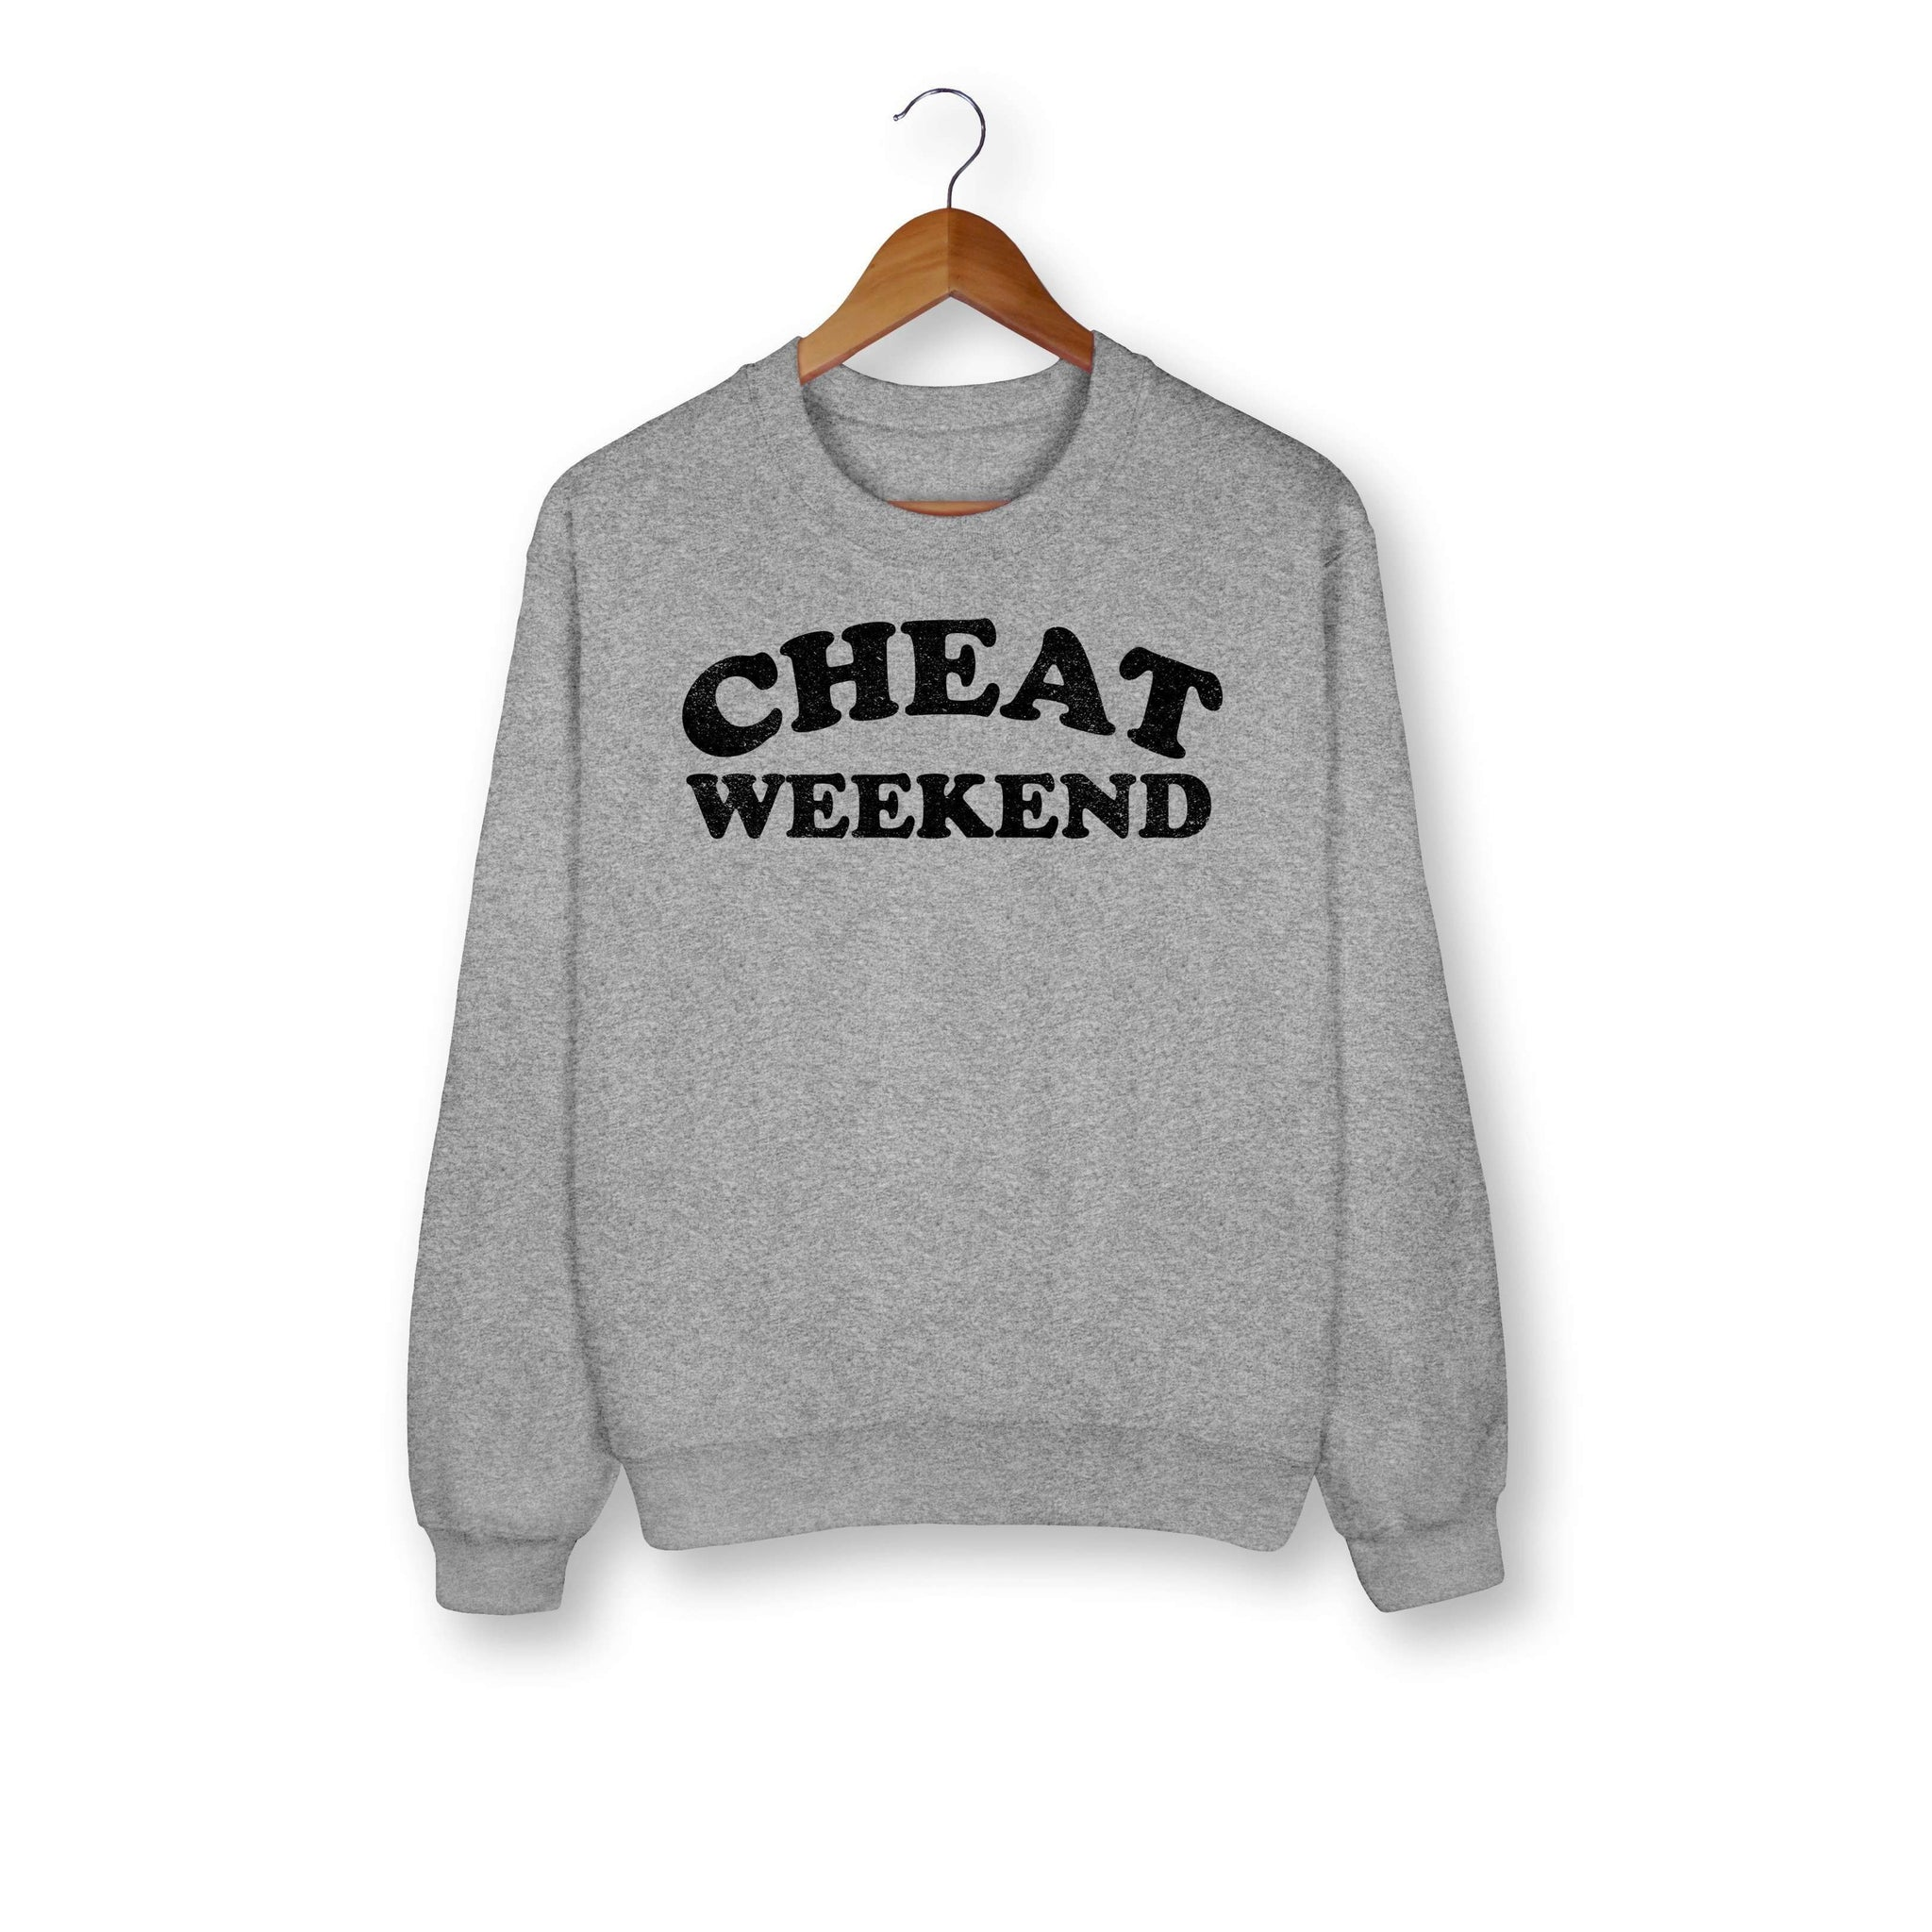 Cheat Weekend Sweatshirt